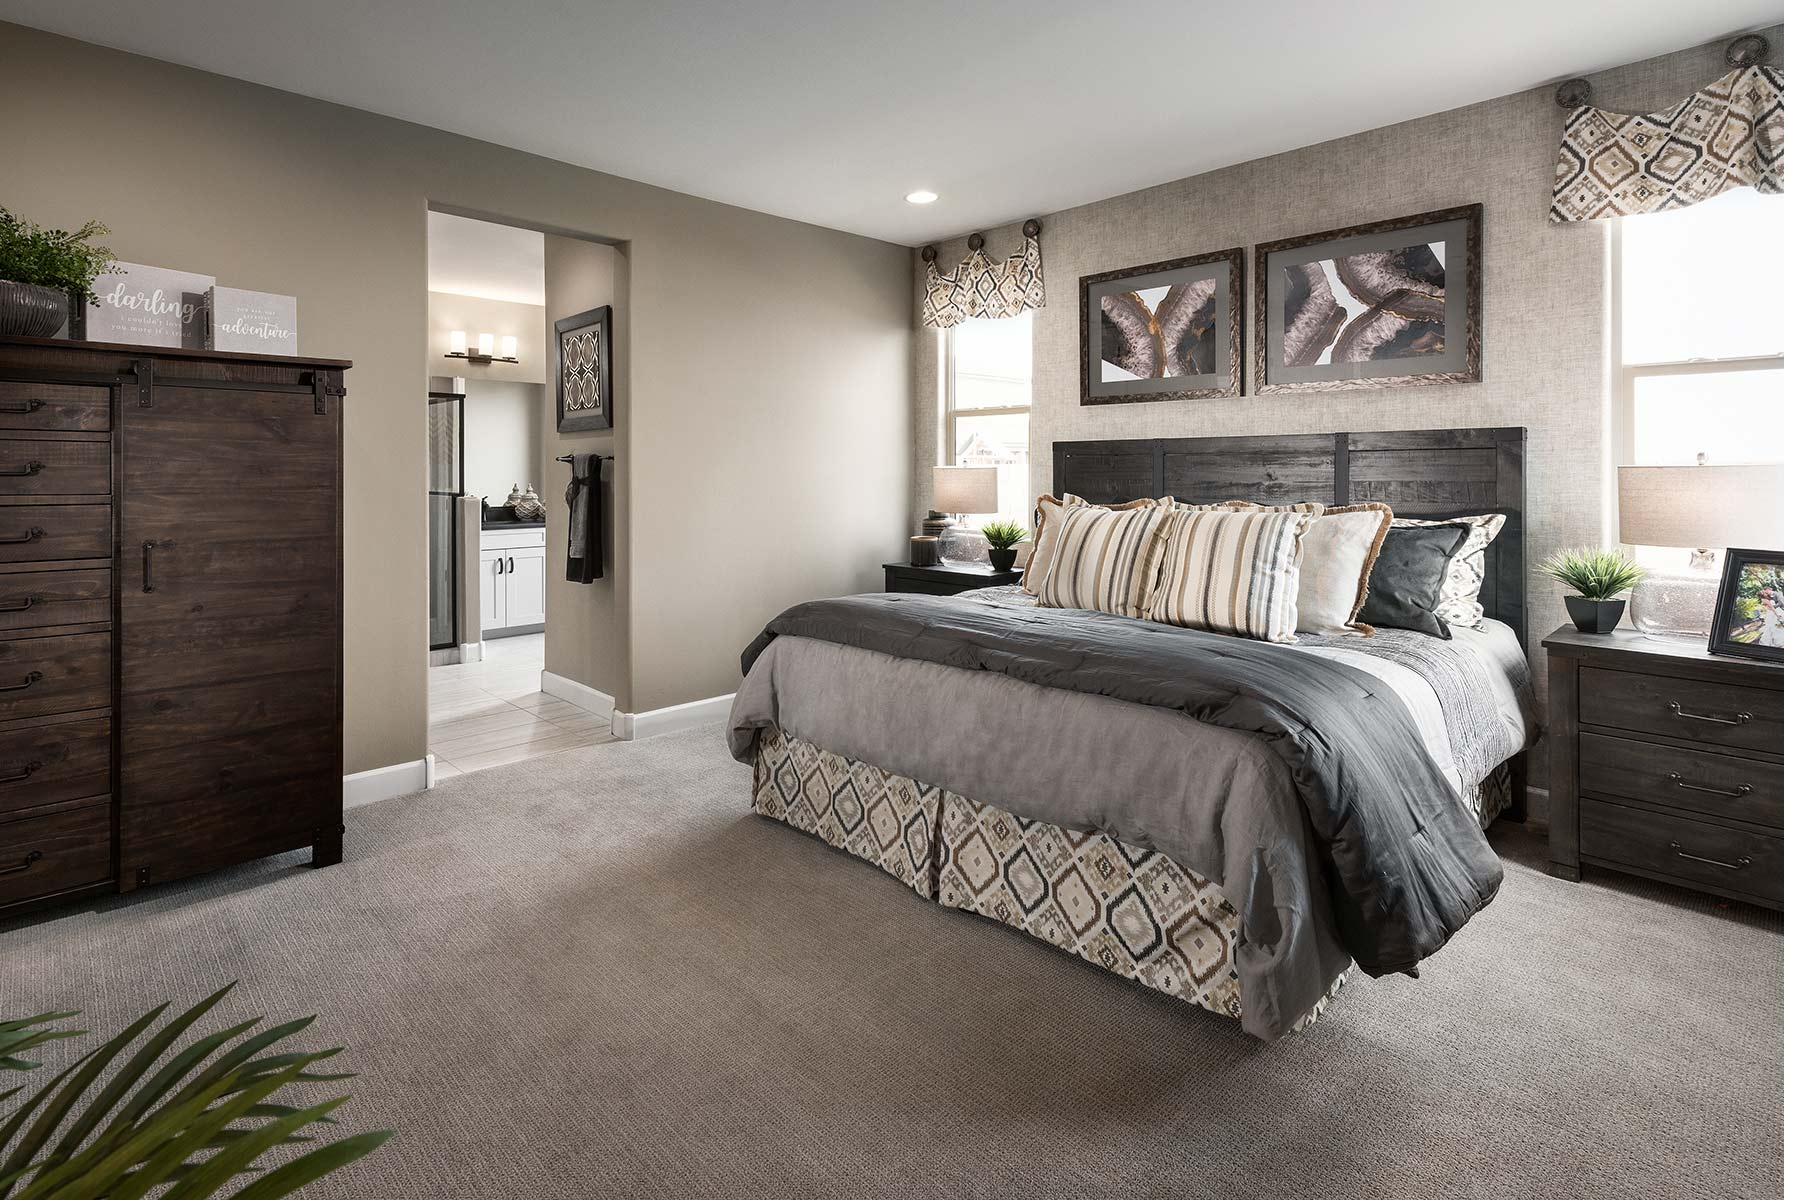 Sophora Plan Bedroom at Saguaro Trails in Tucson Arizona by Mattamy Homes